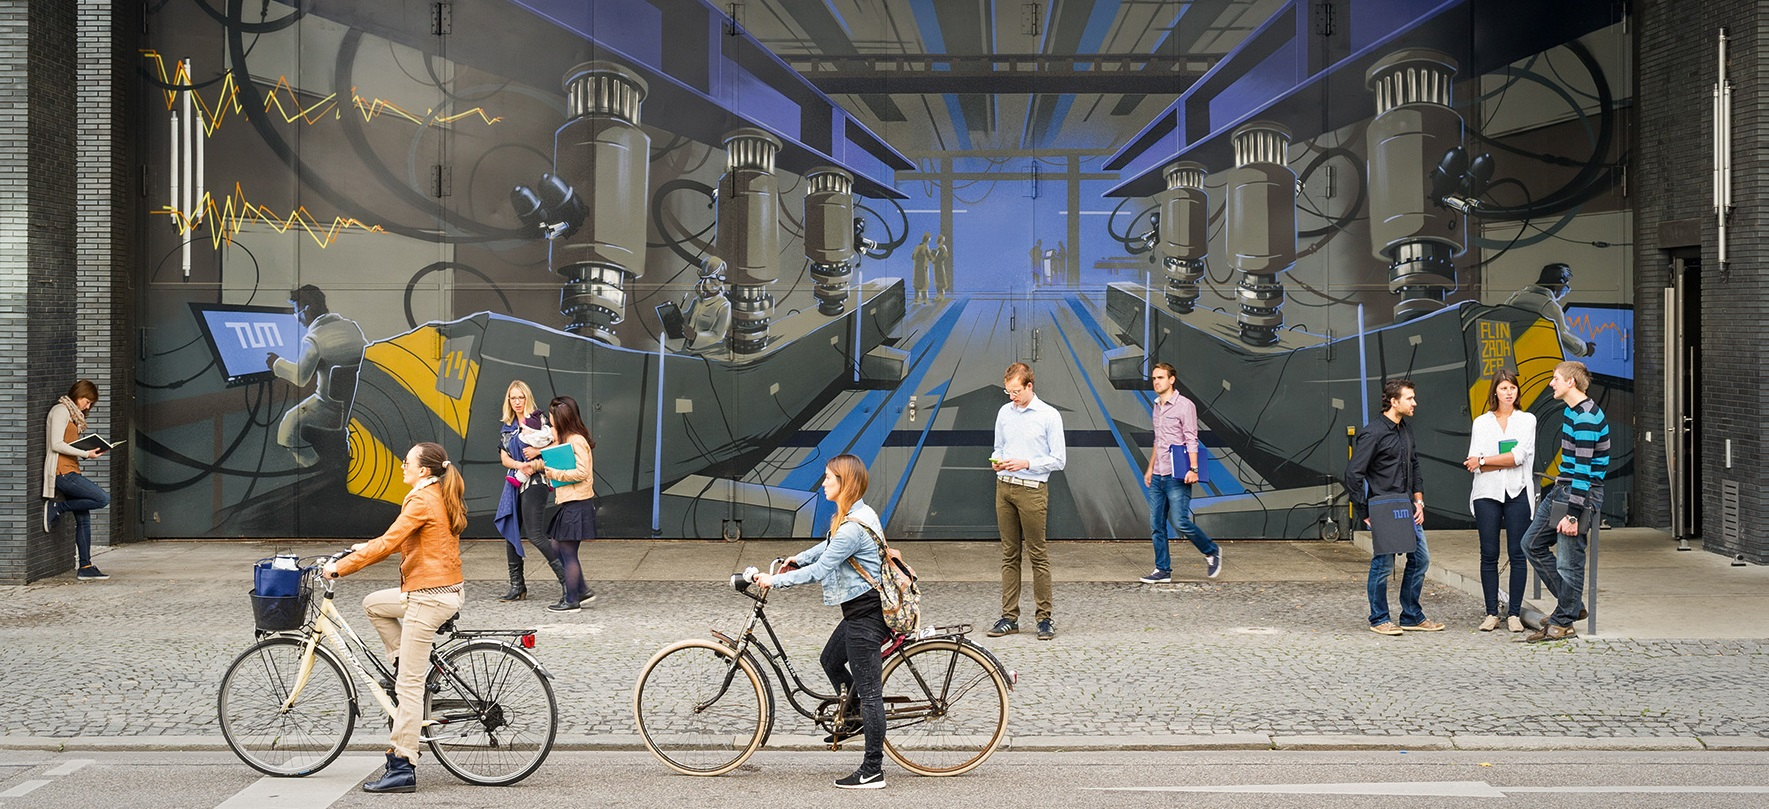 Students on their way to TUM (Image: Eckert)